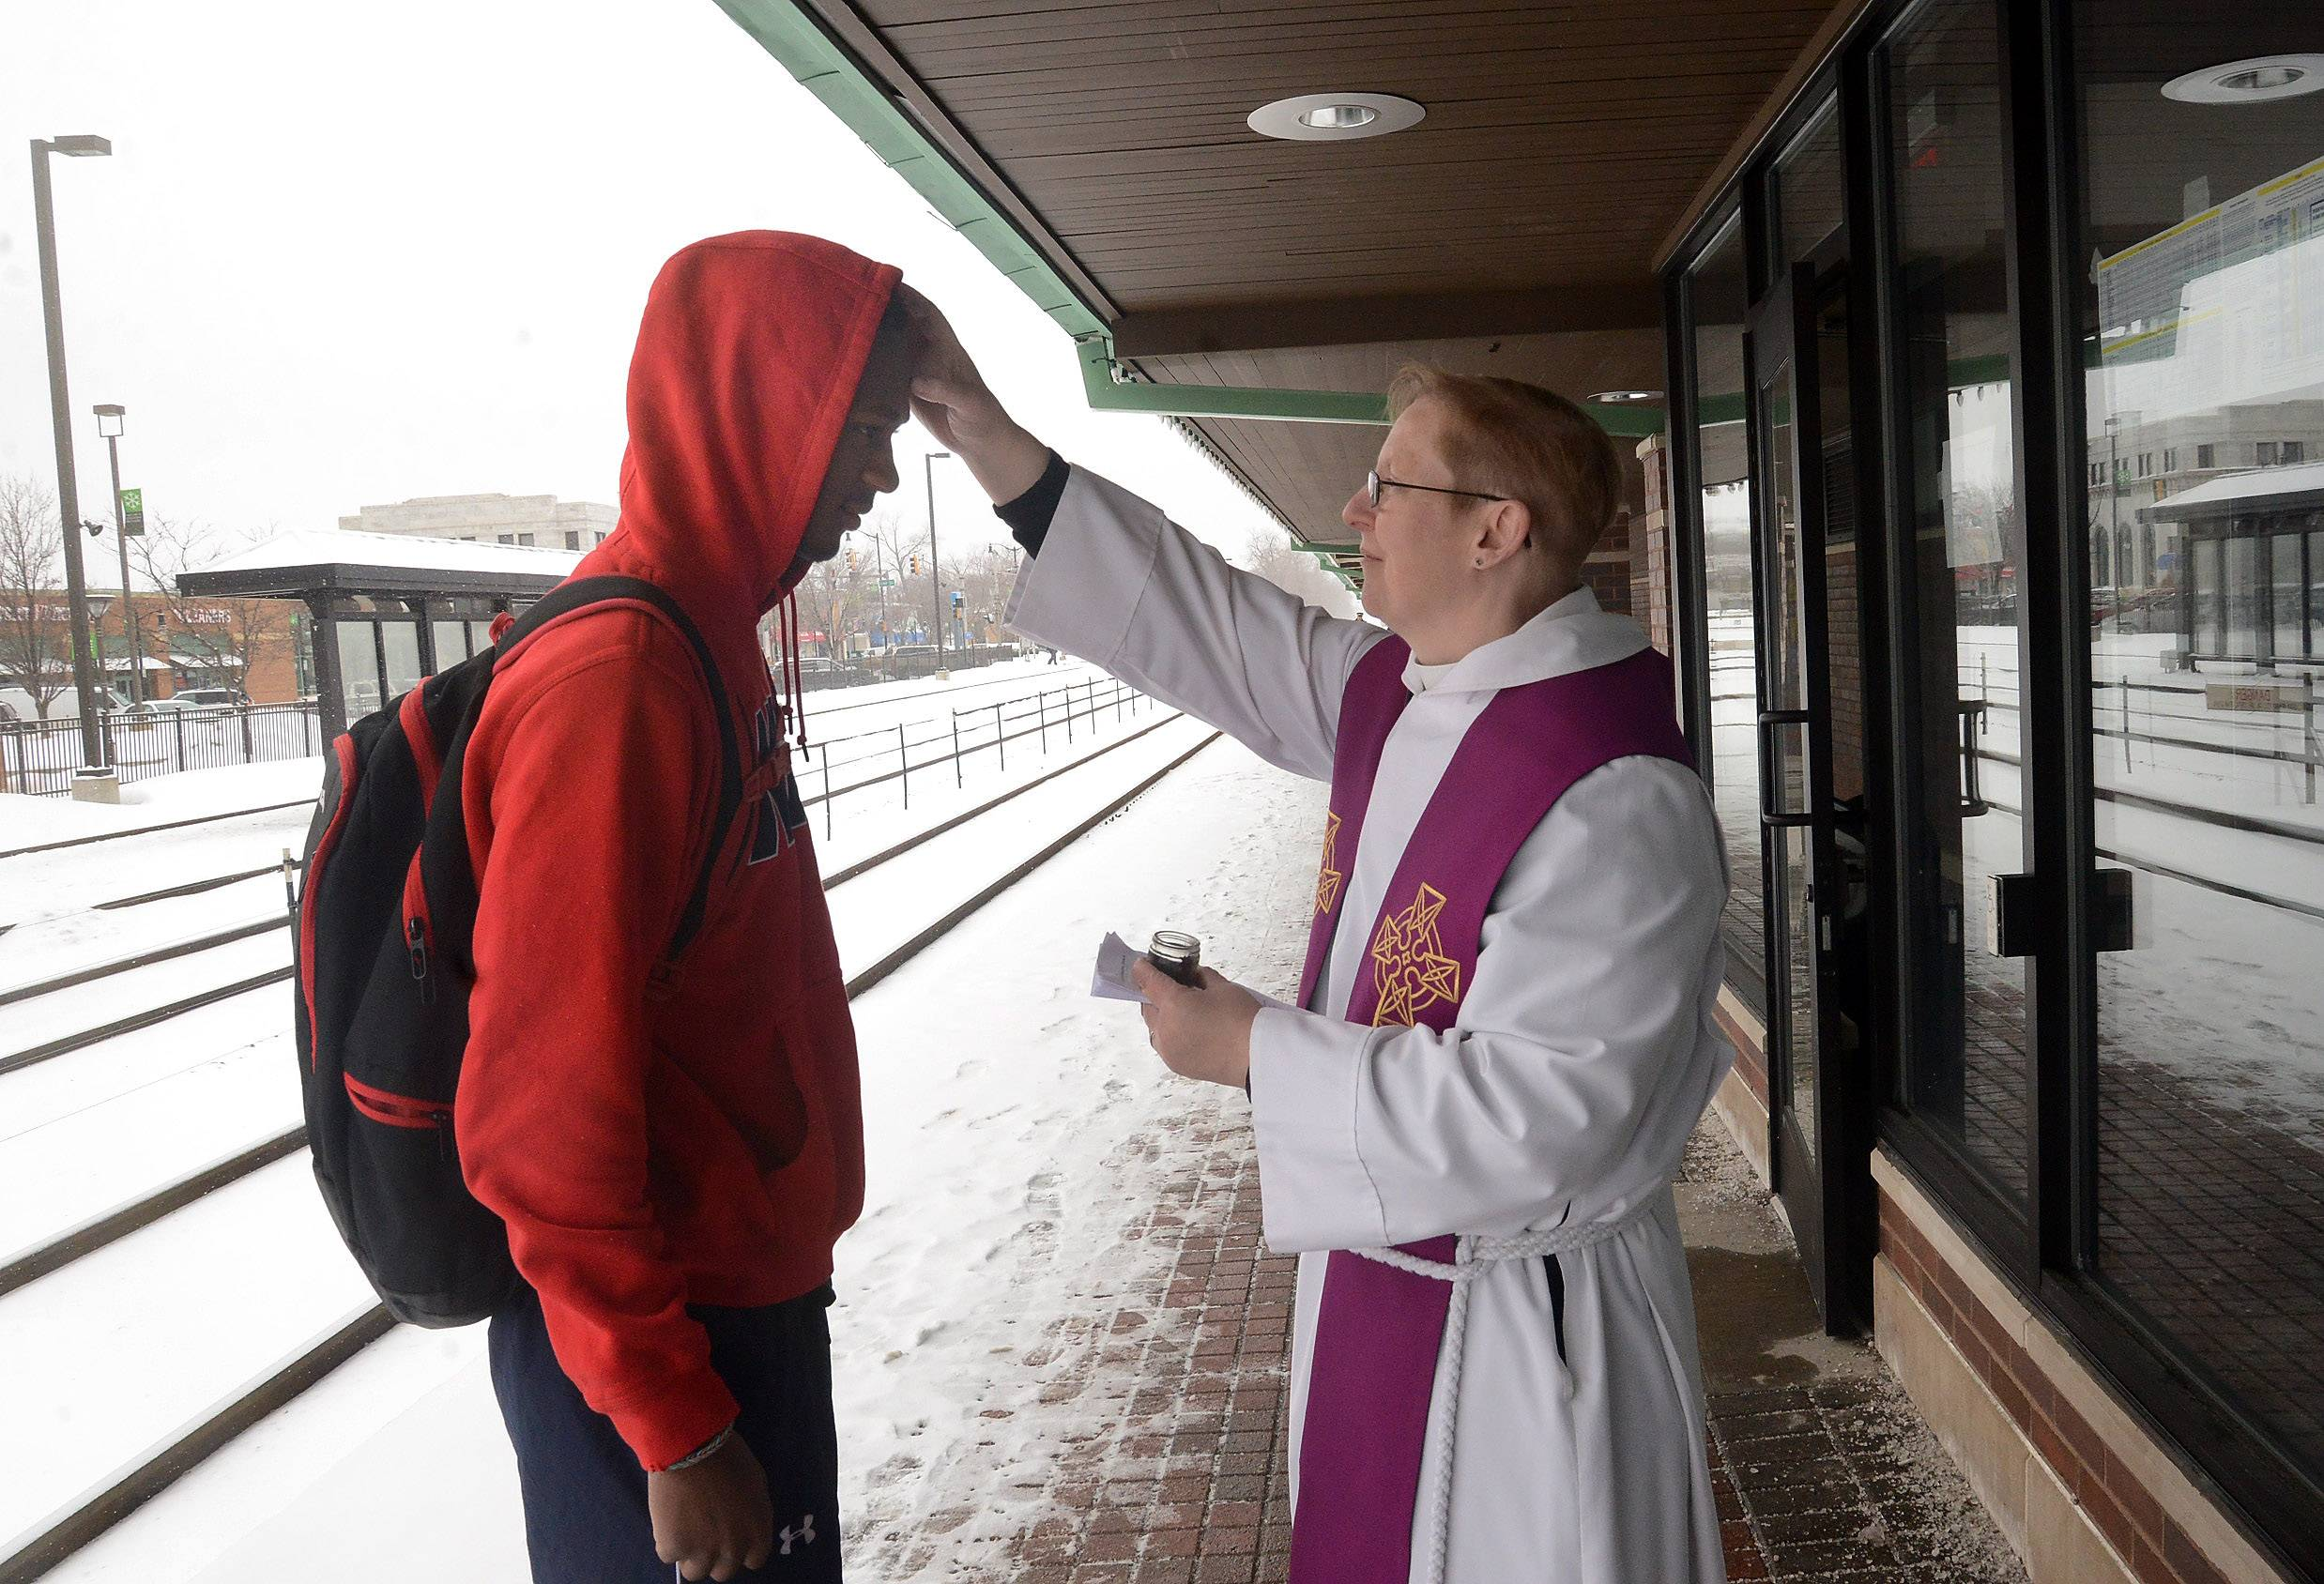 "The Rev. M.E. Eccles of St. Martin's Episcopal Church in Des Plaines provides ""ashes to go"" Wednesday to Ola Arogundade of Wheeling at the Des Plaines Metra train station."